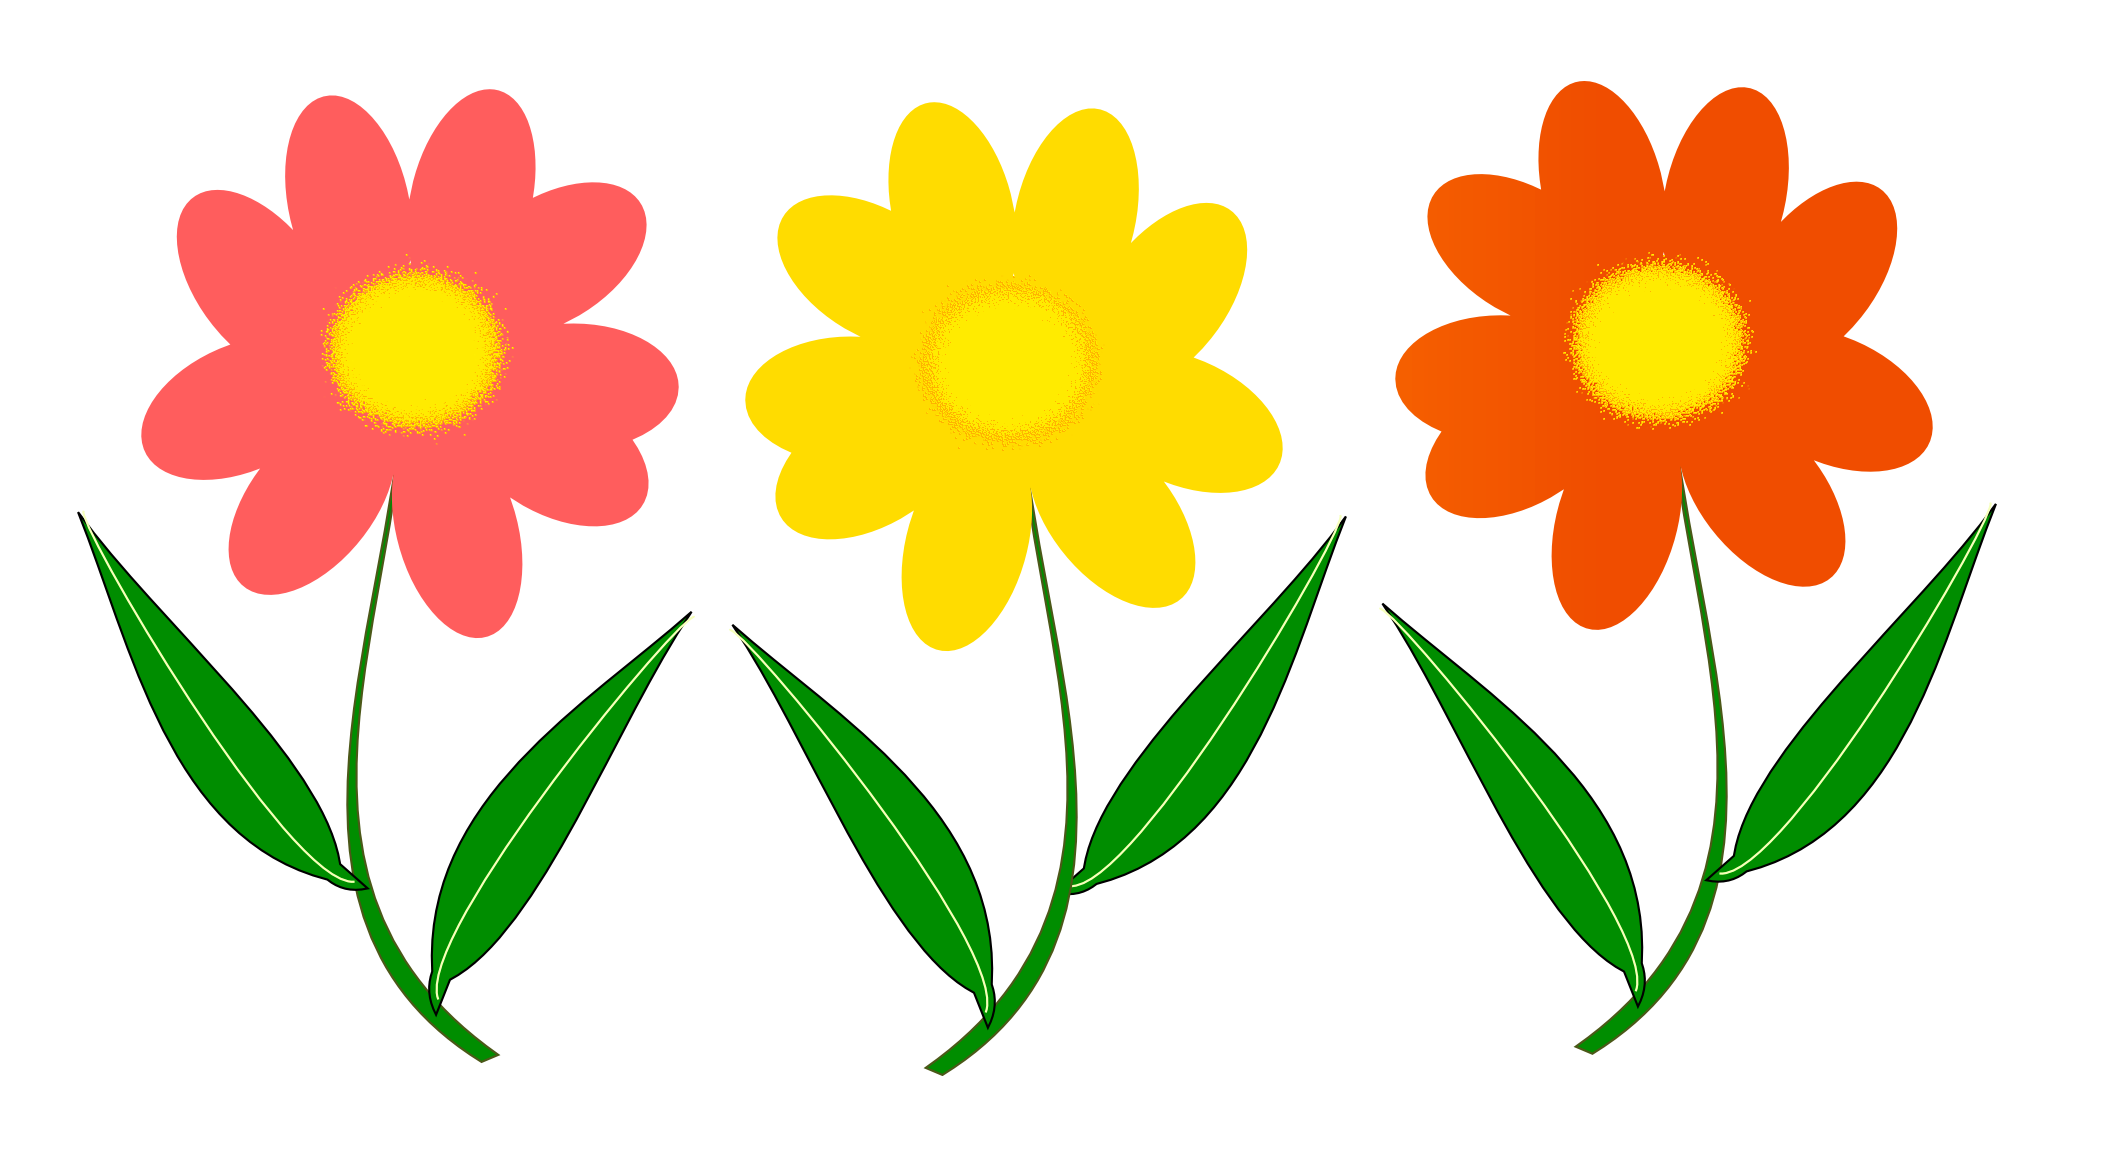 Flower Vector PNG Image - PurePNG